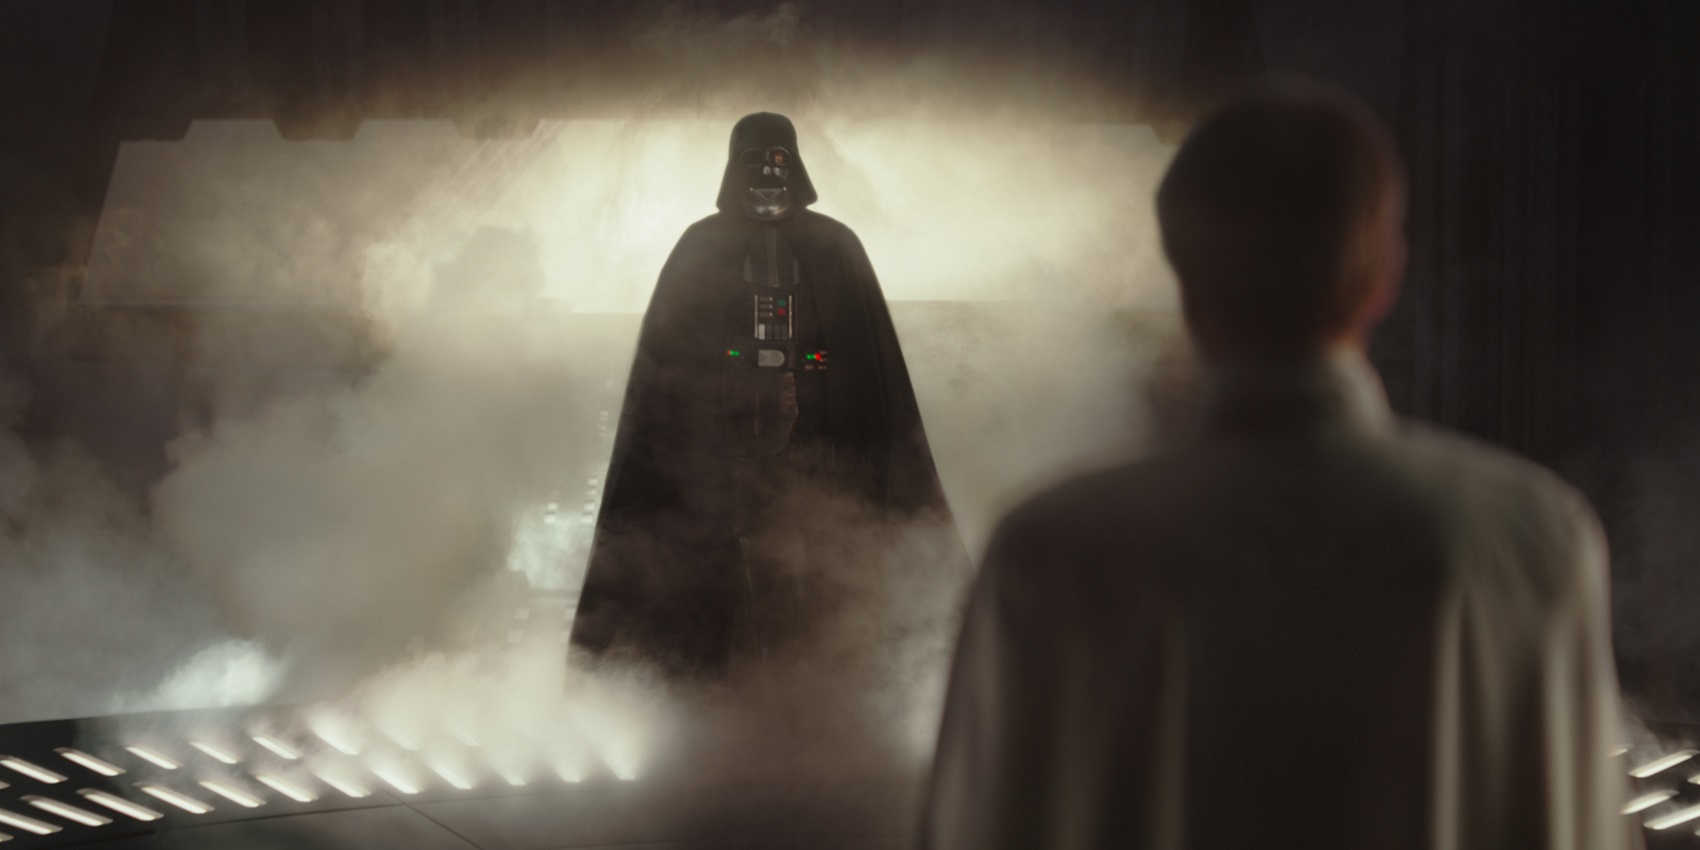 Star Wars Creator George Lucas Once Considered Orson Welles For Darth Vader's Voice Role